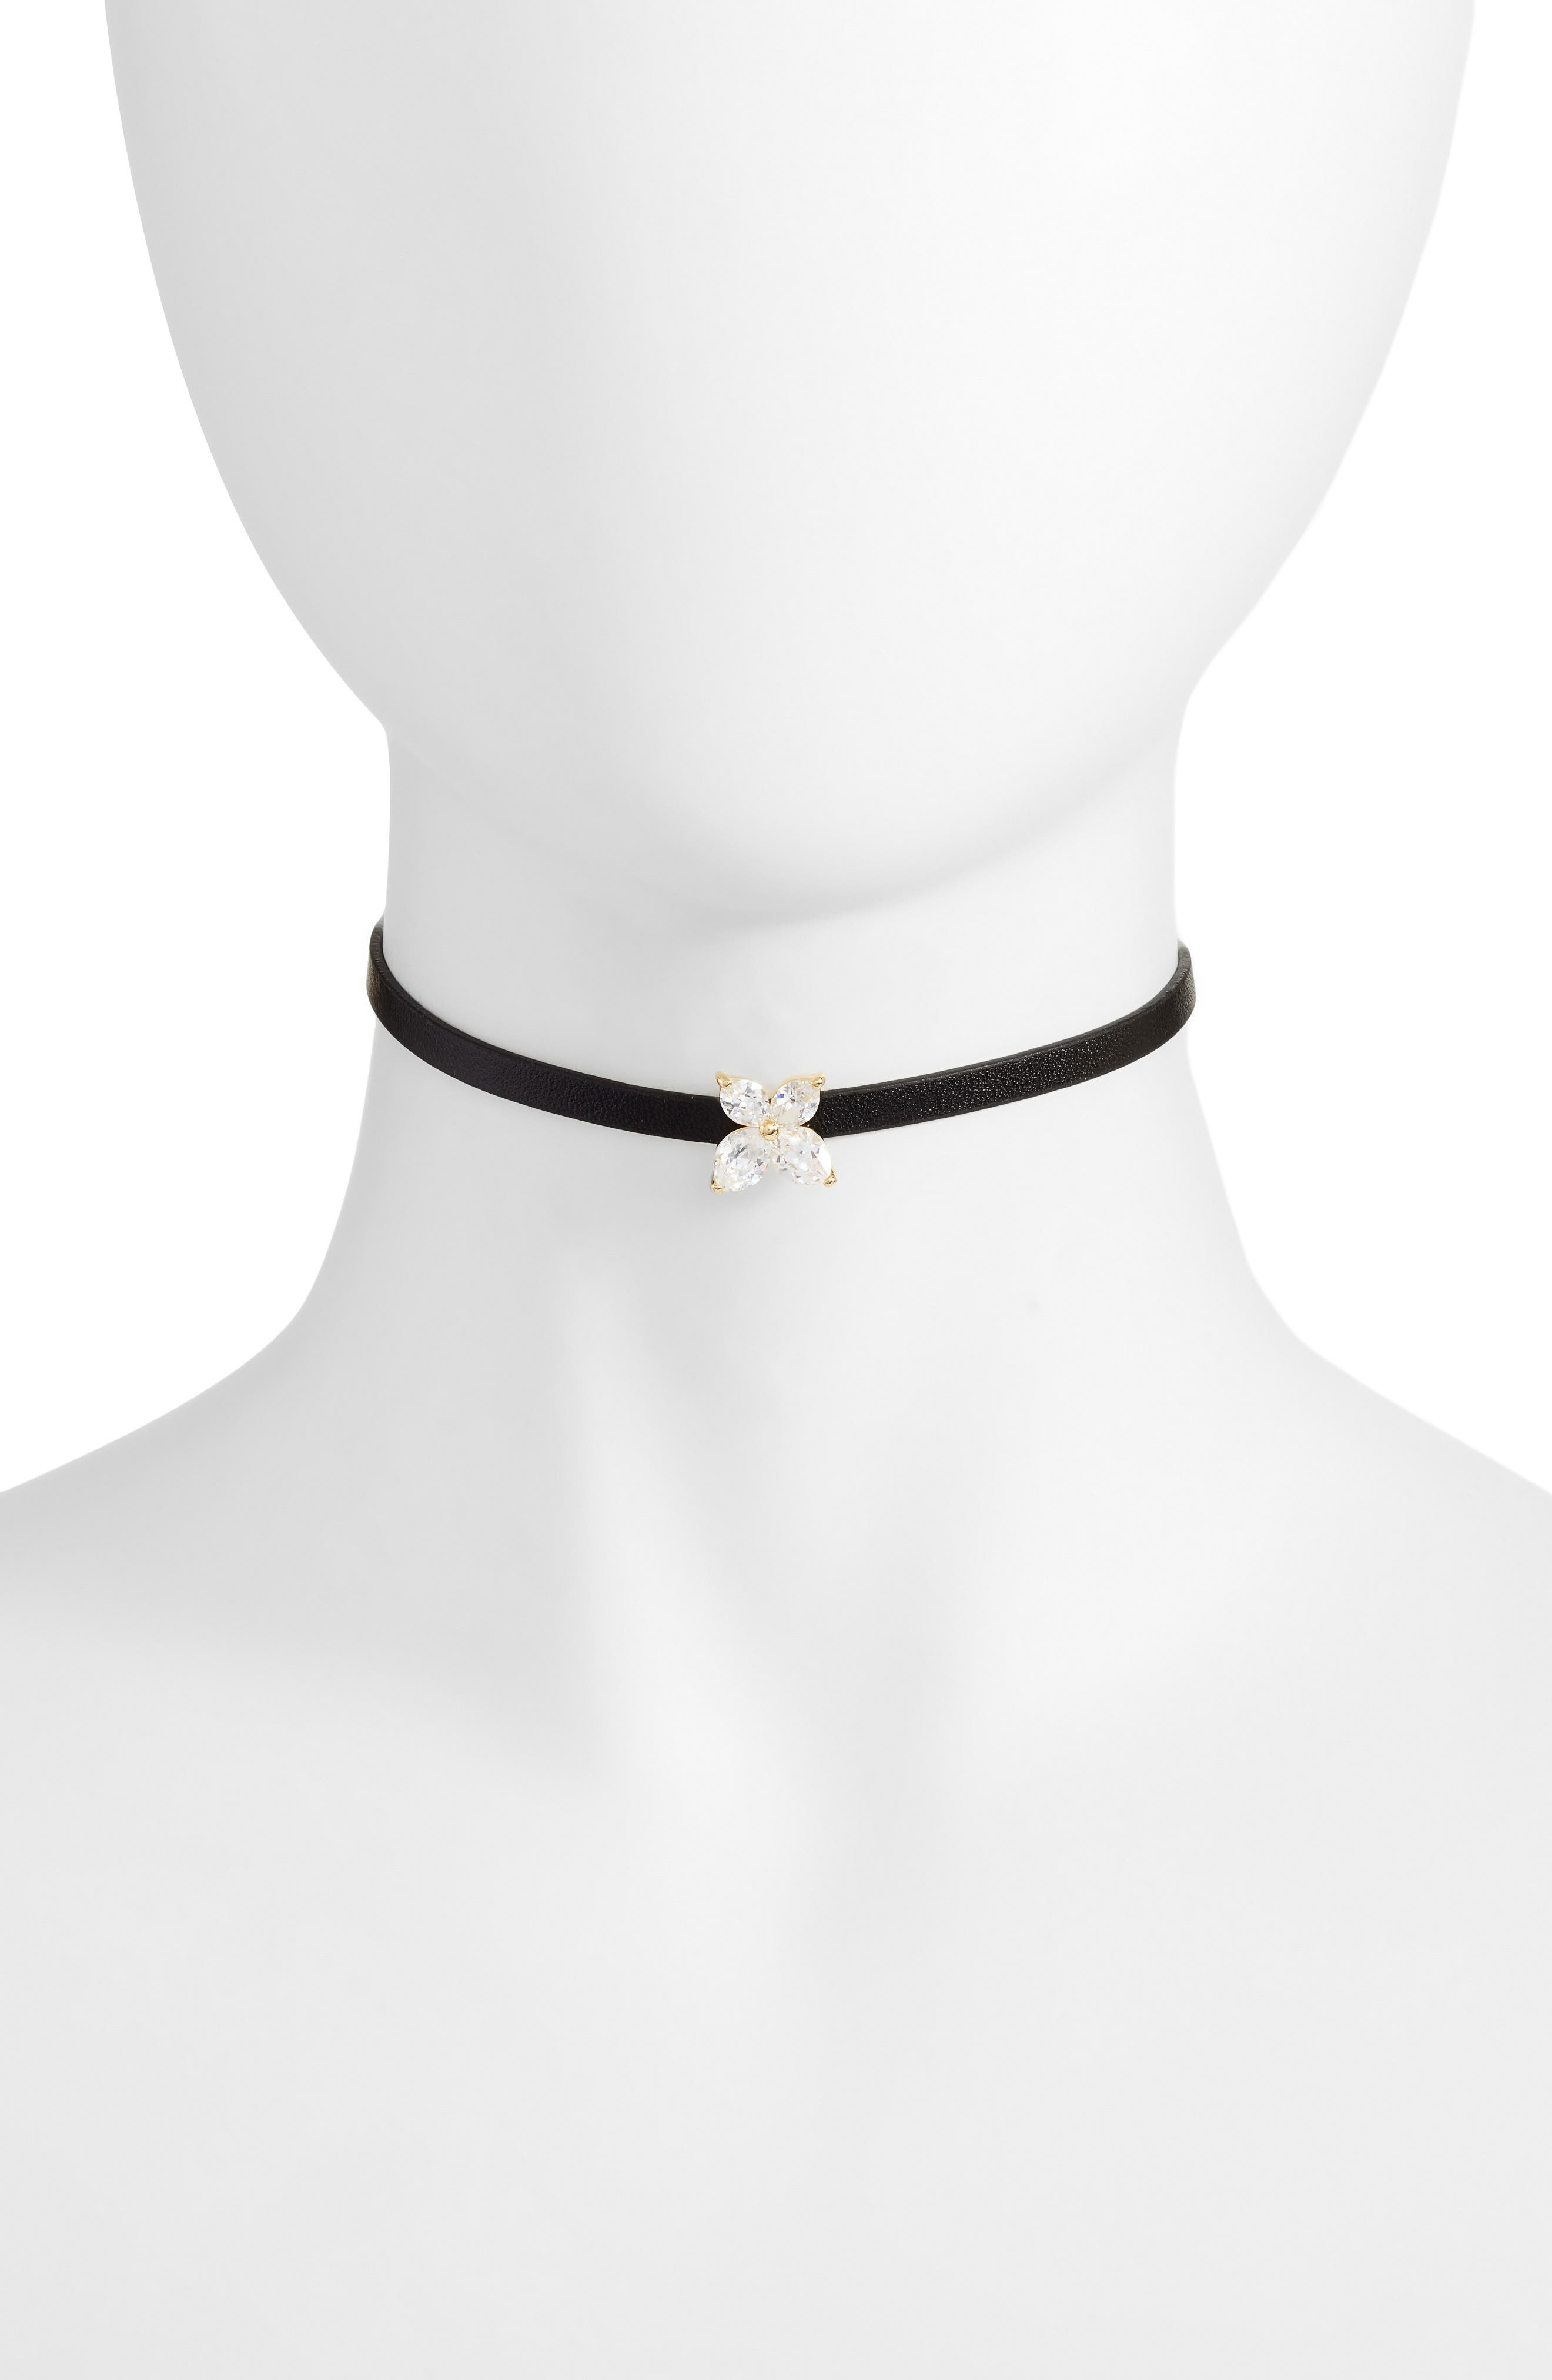 Main Image - CZ by Kenneth Jay Lane Marquise Choker Necklace